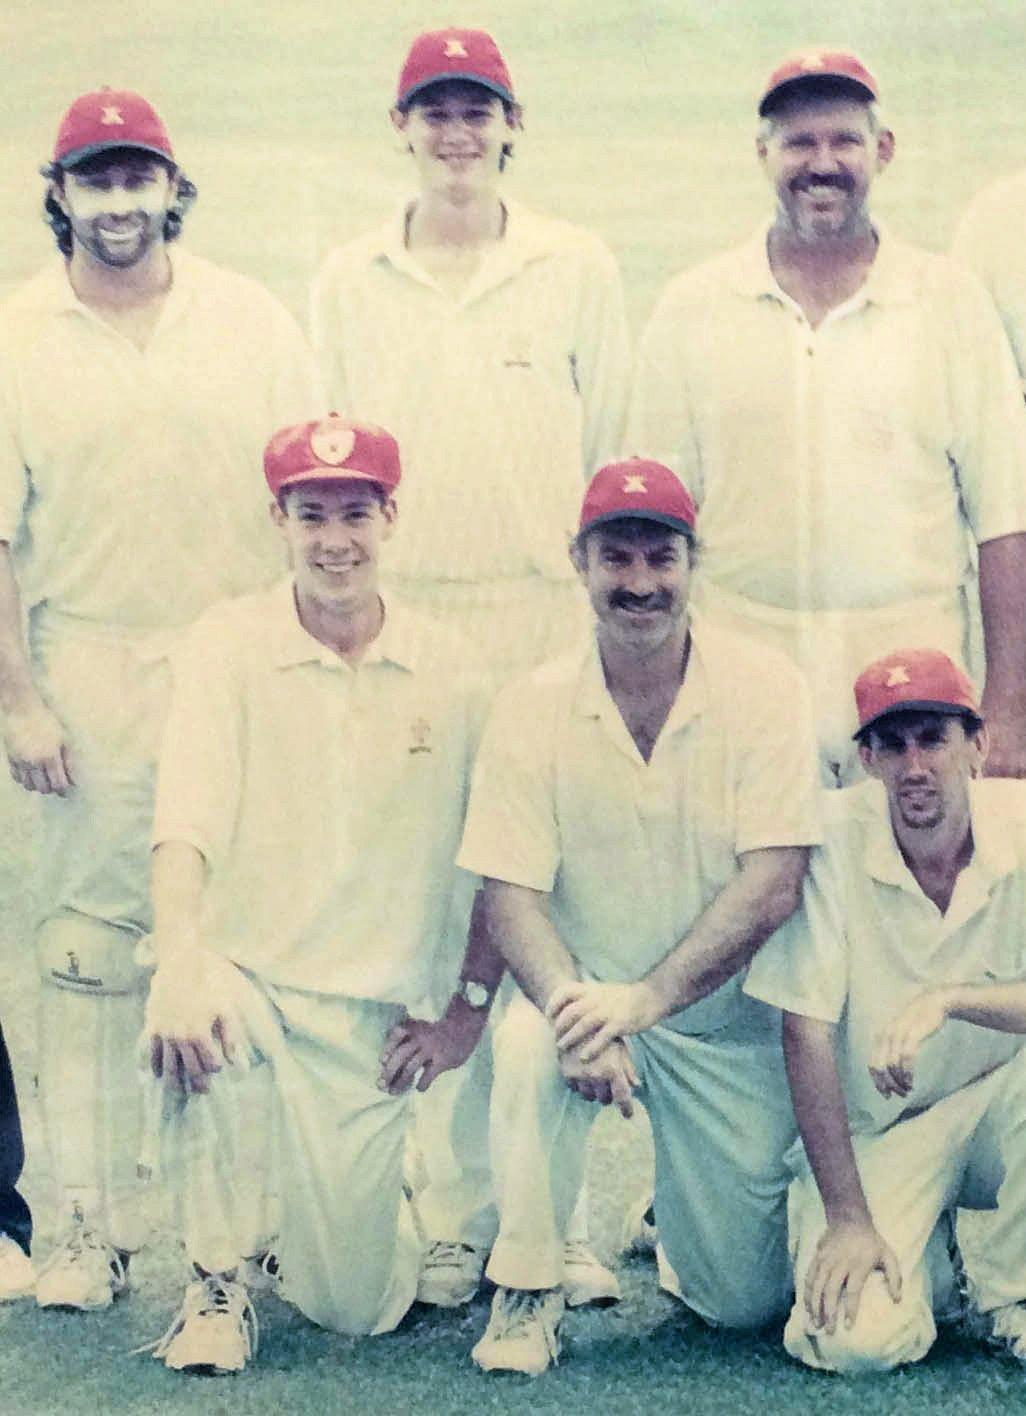 Part of the South Services Cricket Club first grade grand finalists 1999-2000. Back:  Mick O'Neill, Ashley Cowan and John Frame (captain). Front: Ben Atherton, Bill Wynn and Andrew Page.